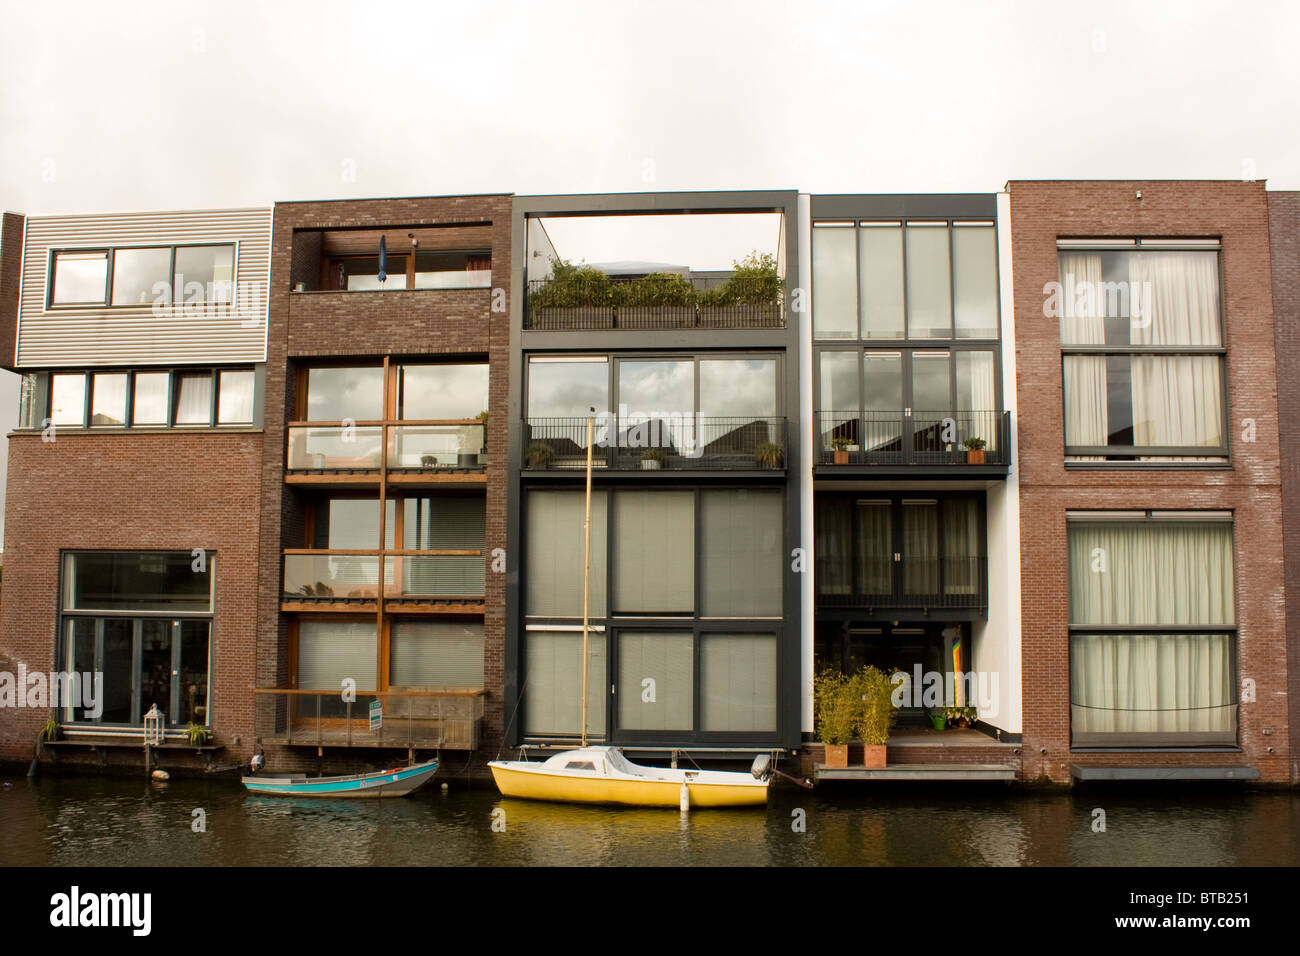 Unique architecture in in Scheepstimmermanstraat, Amsterdam. Row houses with all different modern facades - Stock Image